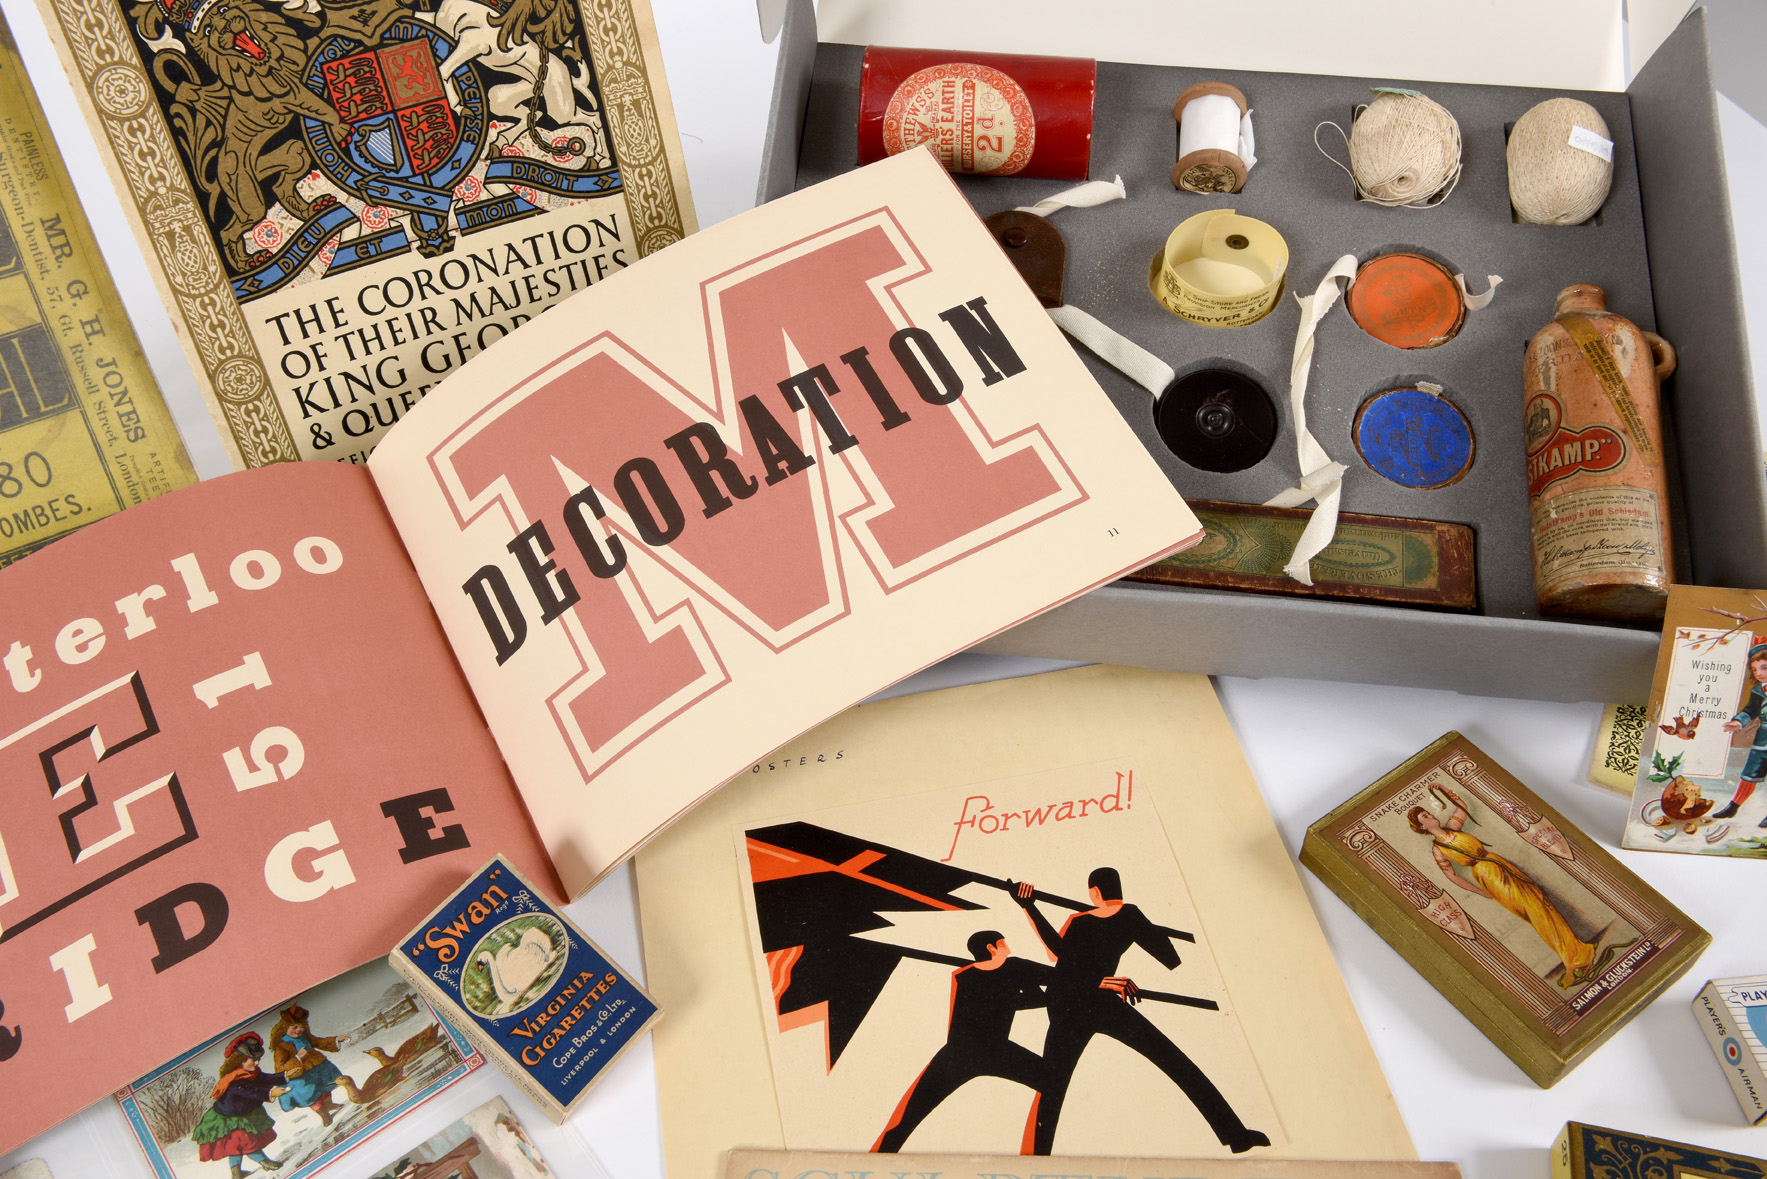 Charles Hasler Collection - Museum of Domestic Design and